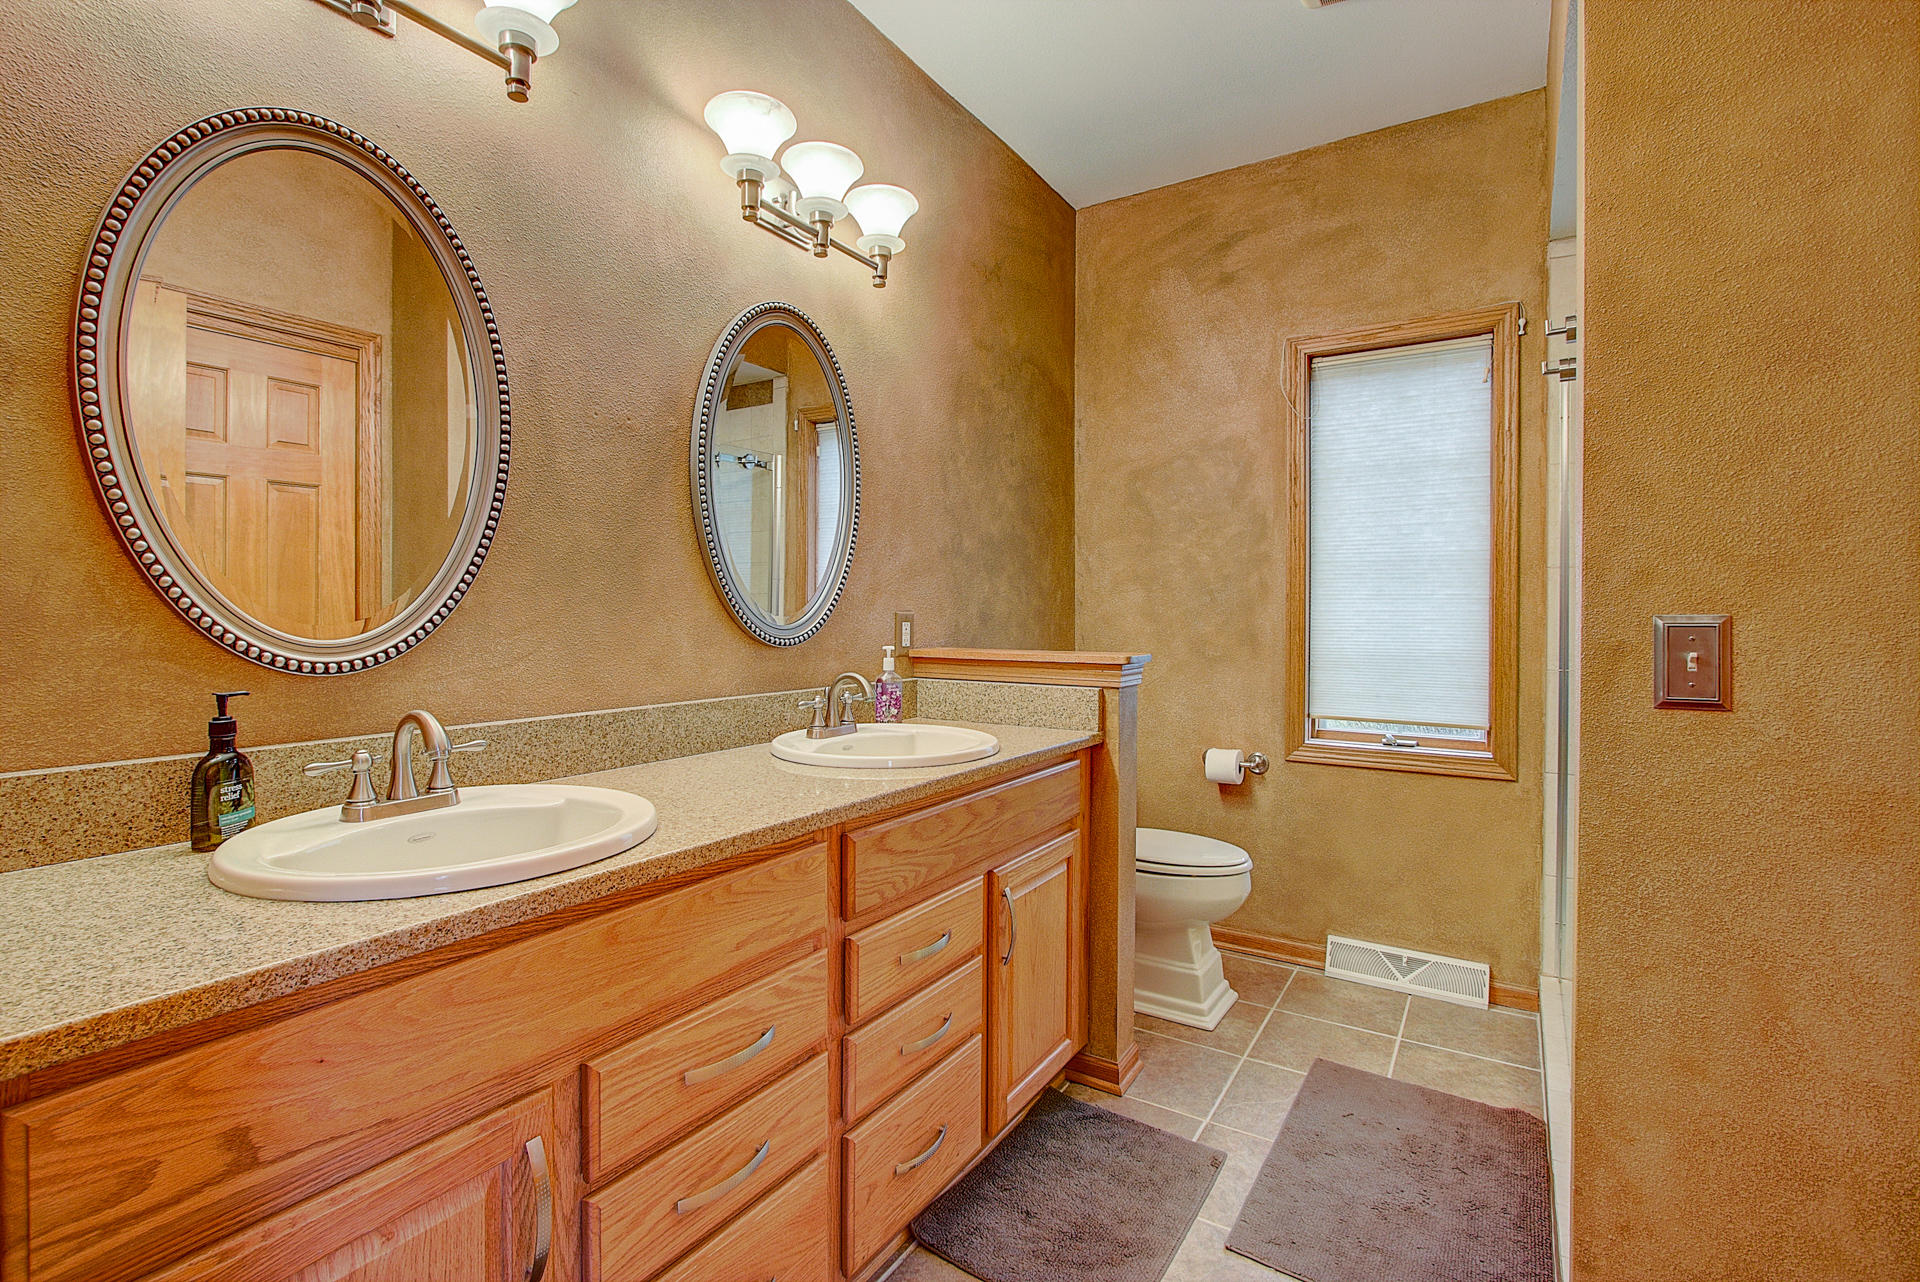 2504 Trillium Hill Ct, Waukesha, Wisconsin 53189, 4 Bedrooms Bedrooms, ,3 BathroomsBathrooms,Single-Family,For Sale,Trillium Hill Ct,1618075